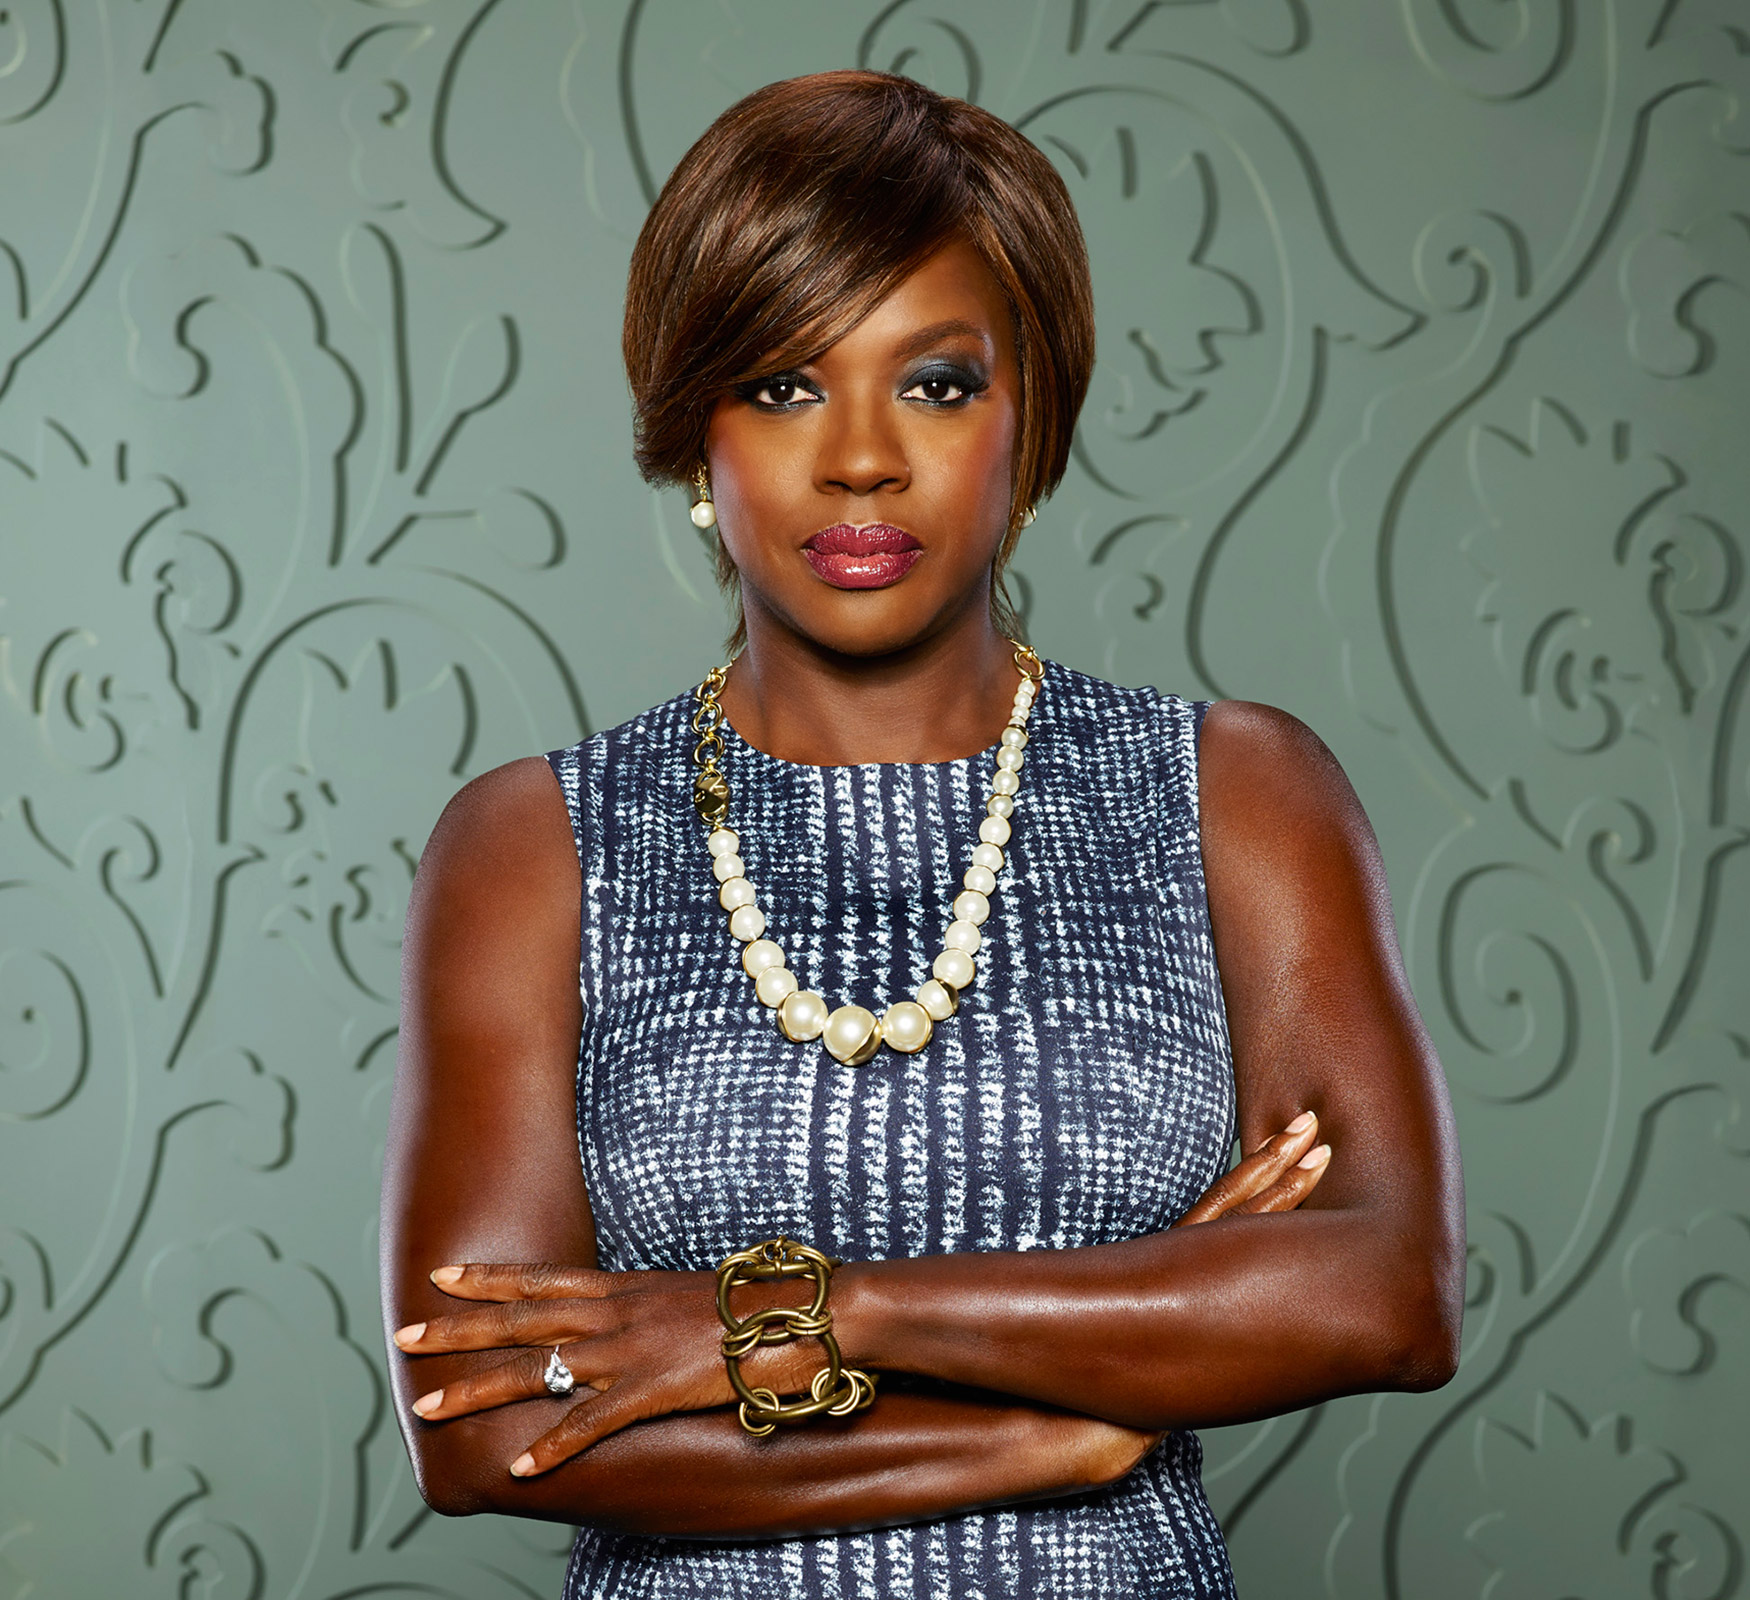 Viola Davis, a dark-skinned Black woman, plays Annalise Keating on How to Get Away with Murder